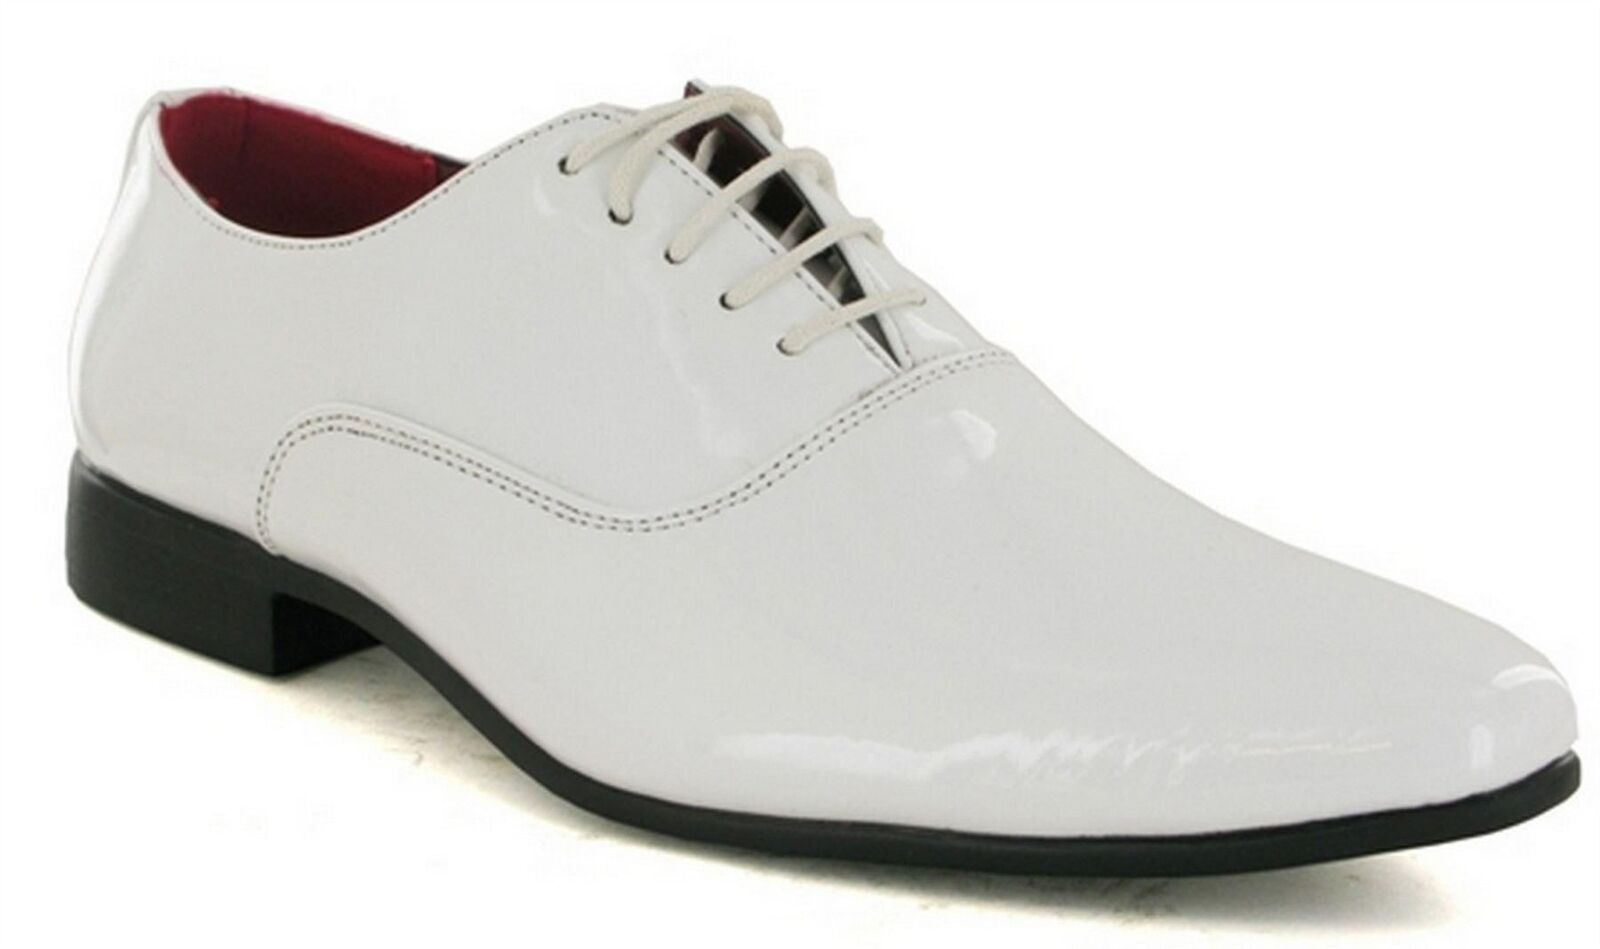 Mens White Shiny Patent Smart Lace Up Wedding Formal Pointed Oxford Shoes